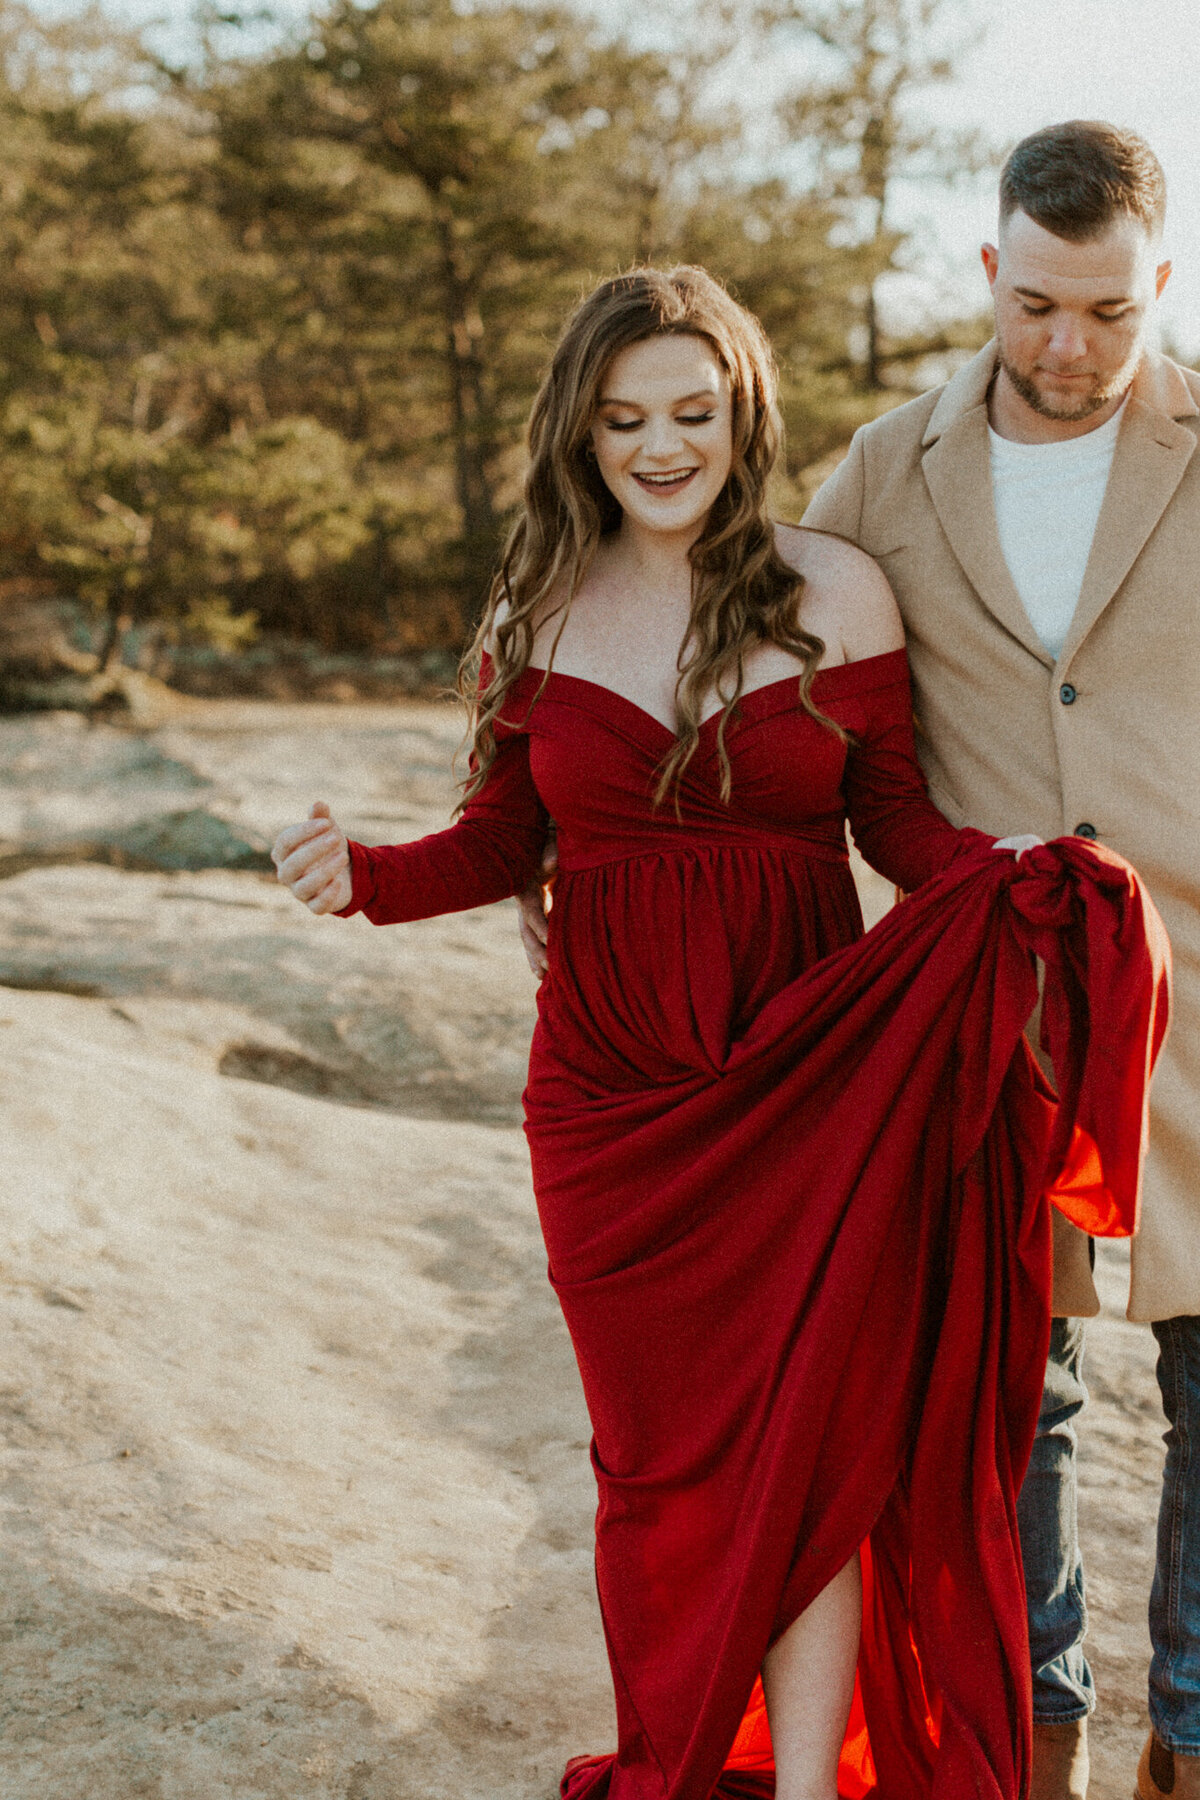 Red-River-Gorge-Kentucky-Adventurous-Couples-Session_Maternity-Photos_Kentucky-Photographer_Anna-Ray-Photography-83